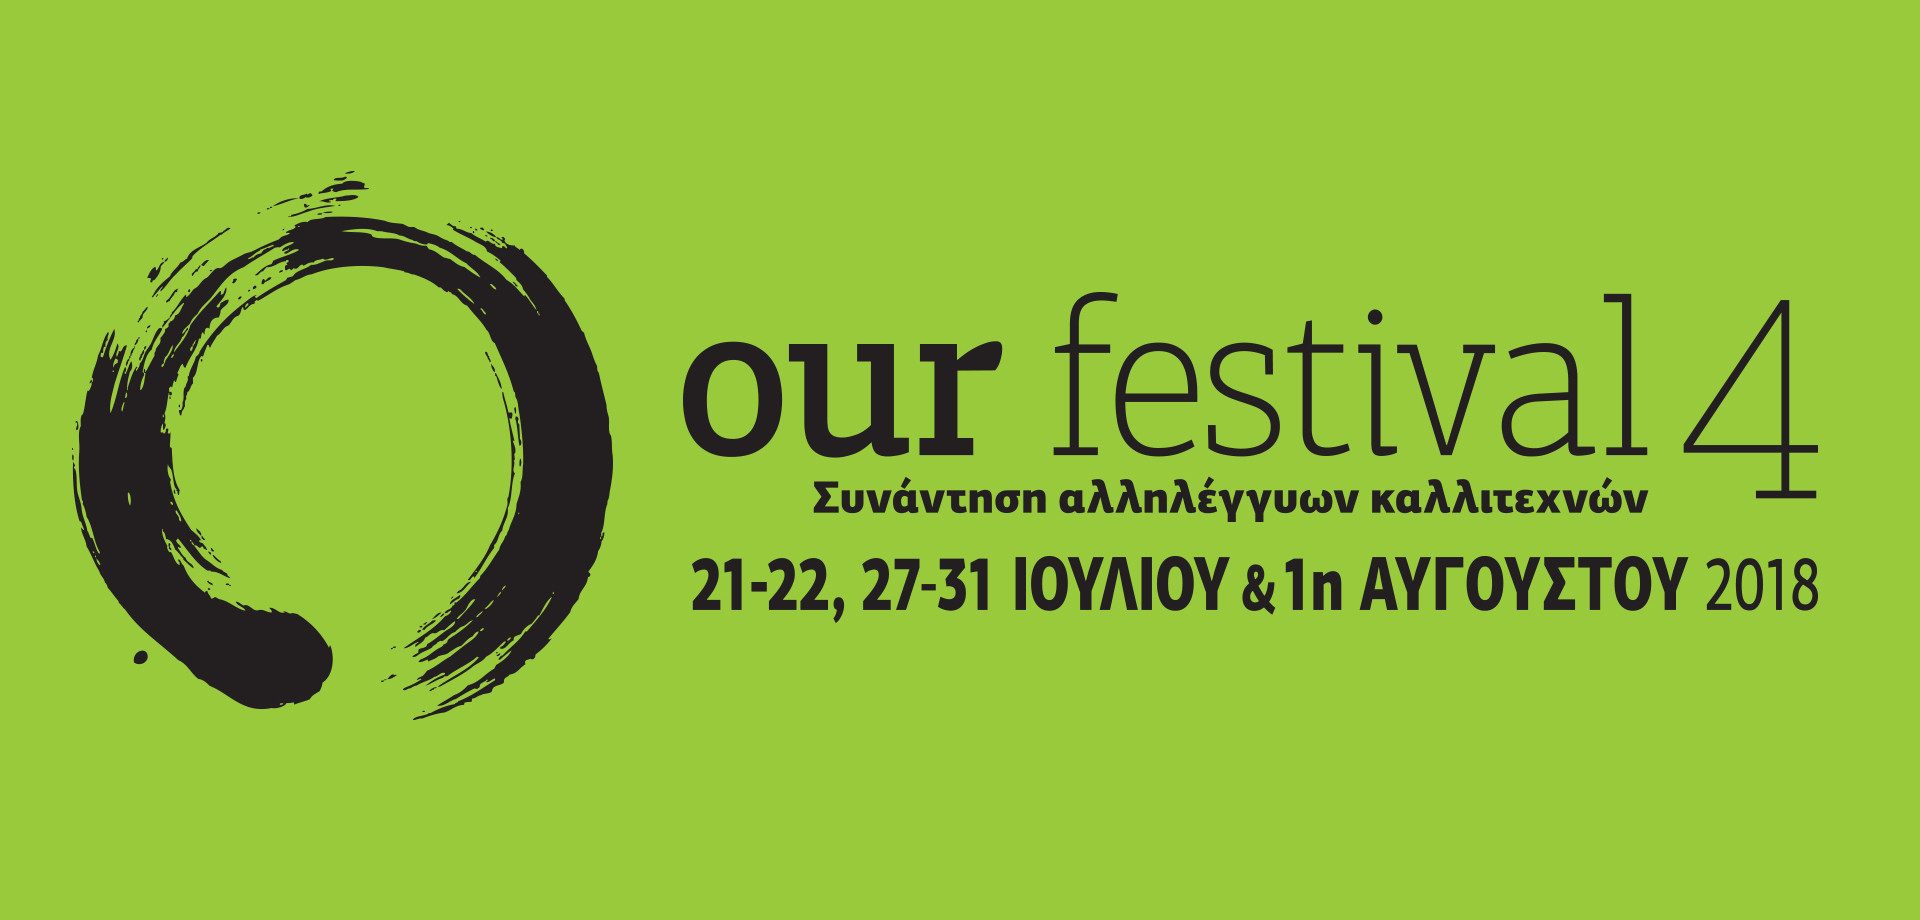 Our Festival 2018